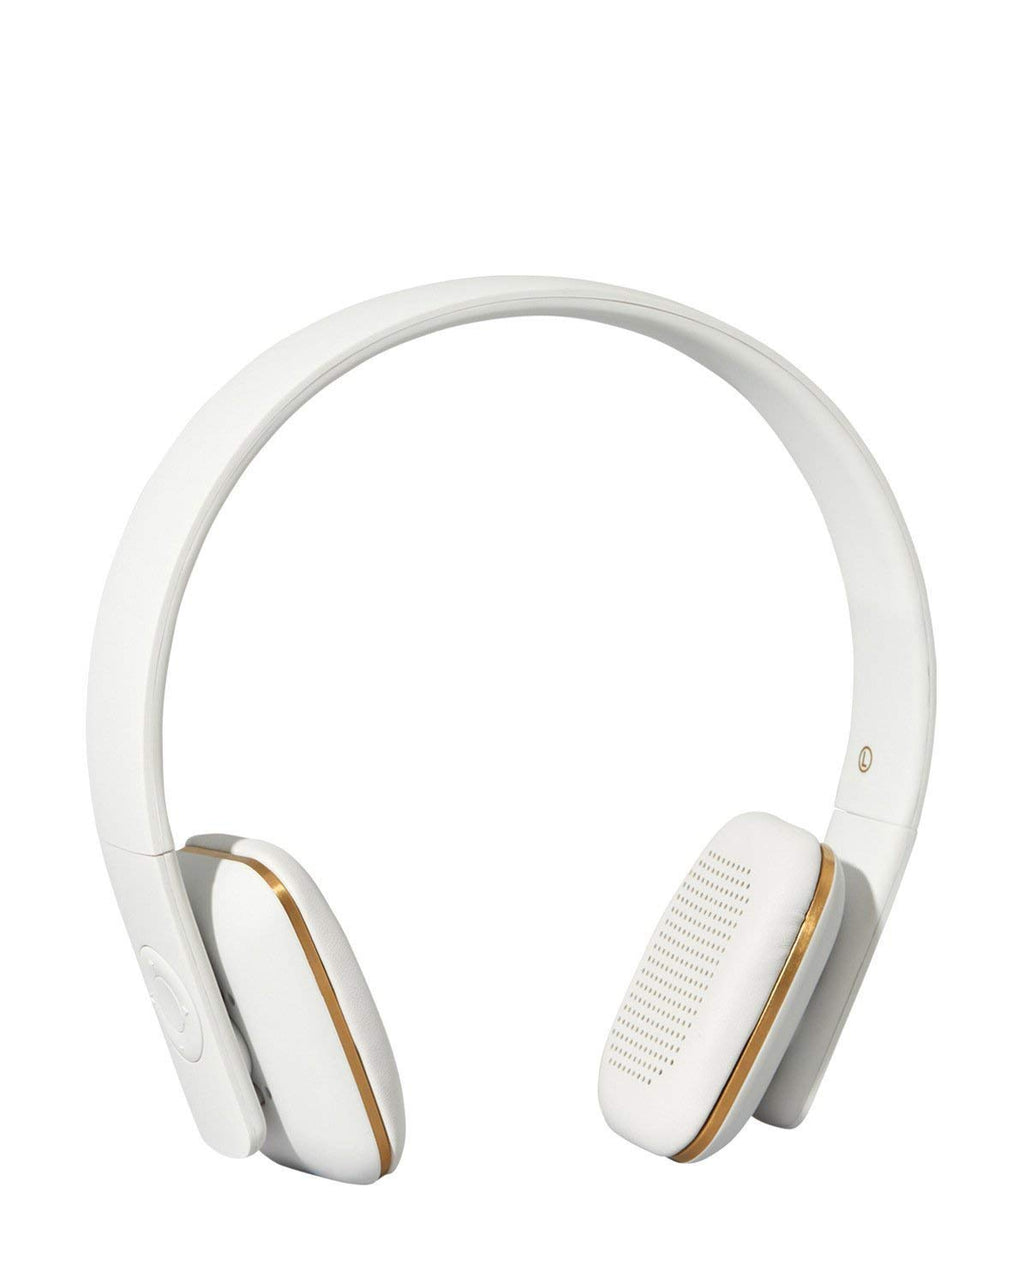 KREAFUNK AHEAD 40 mm Speakers Wireless Radio Headset Headphones - White